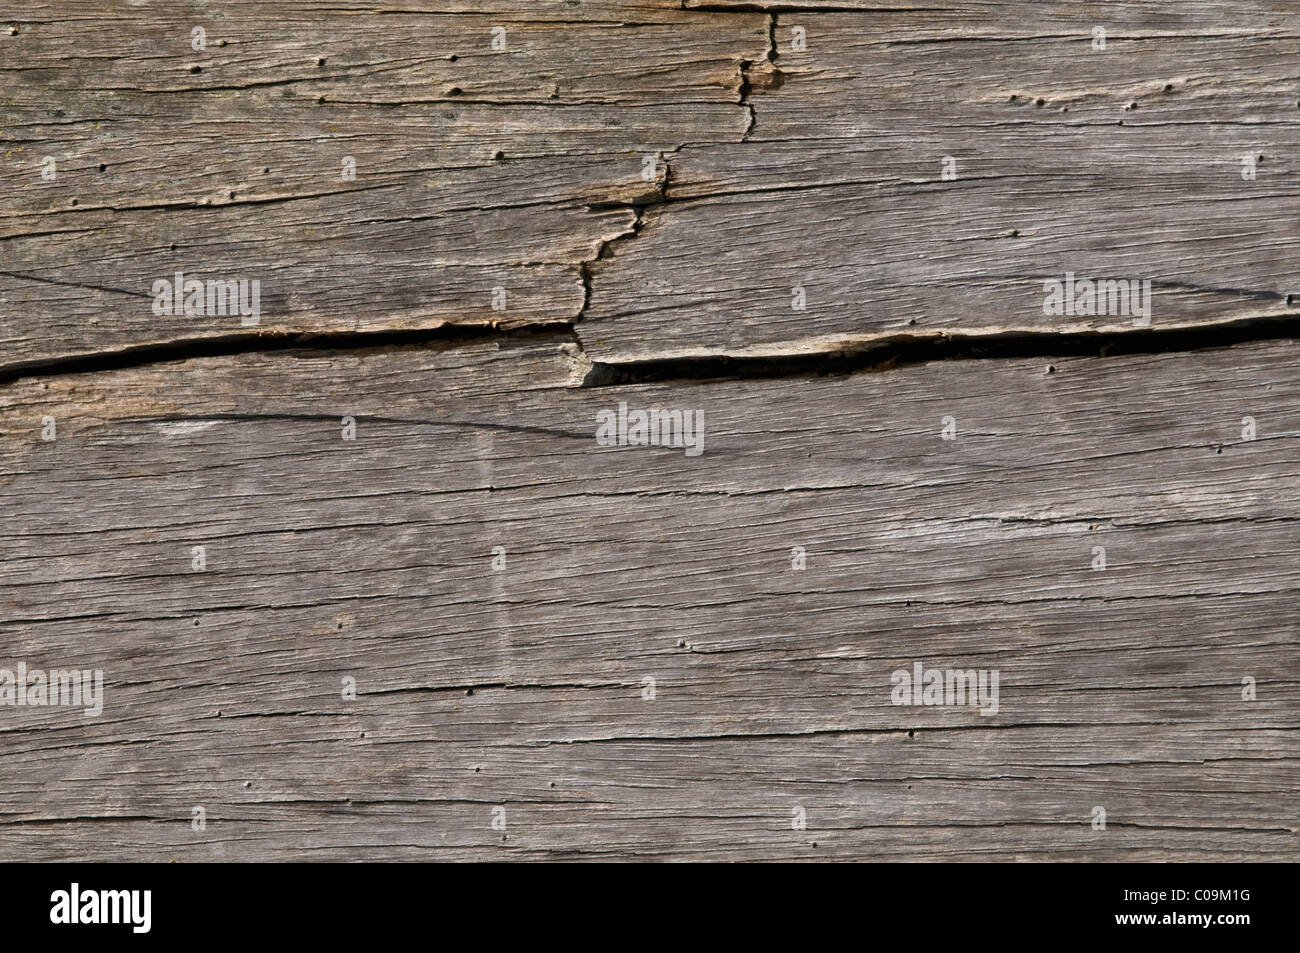 Detail old wooden board, background - Stock Image